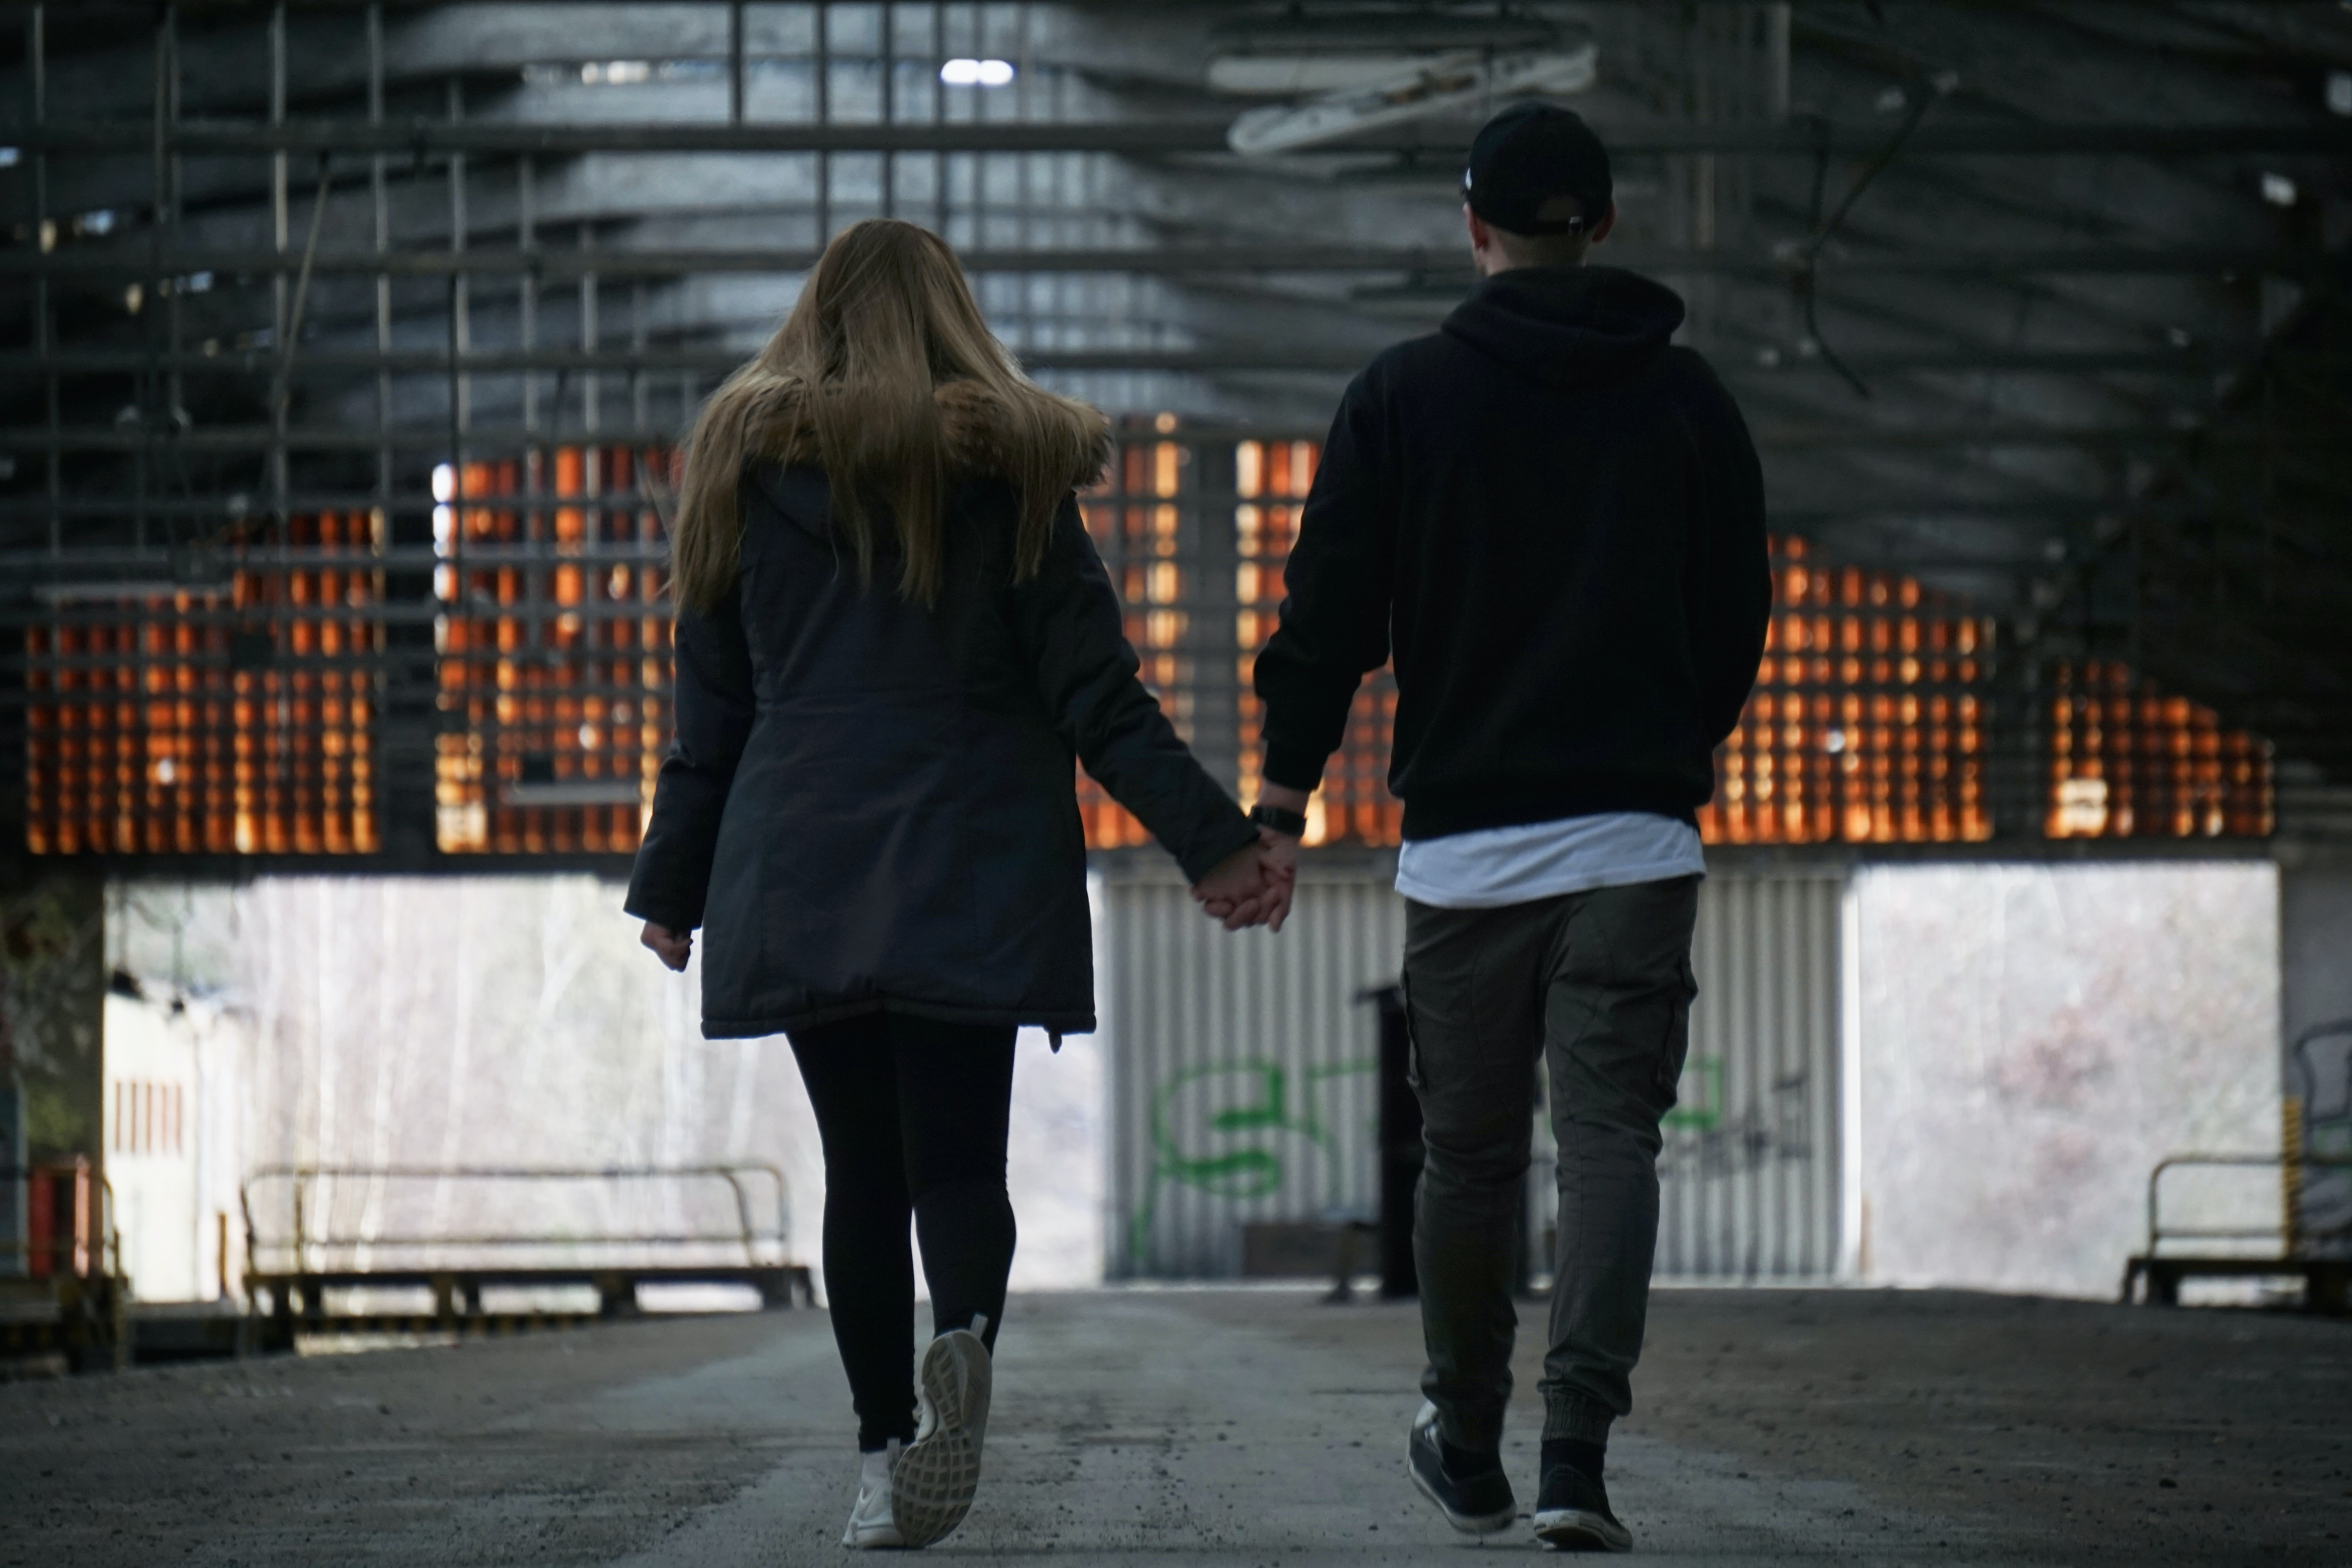 man and woman walking while holding hands